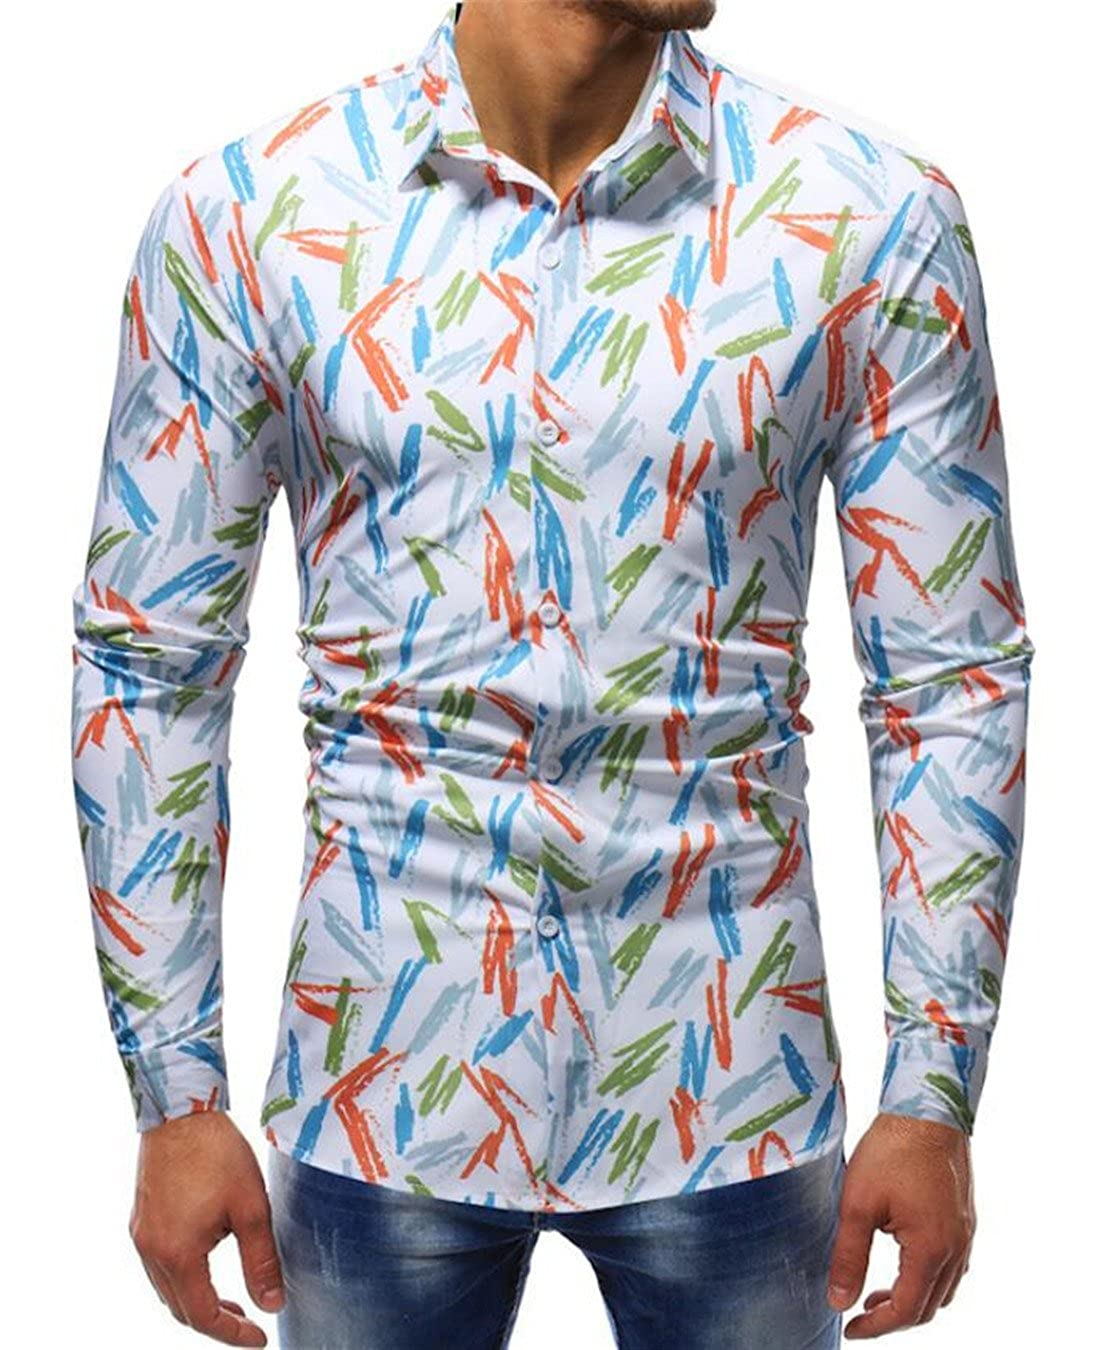 UUYUK Men Casual Slim Fit Floral Long Sleeve Button Down Shirt